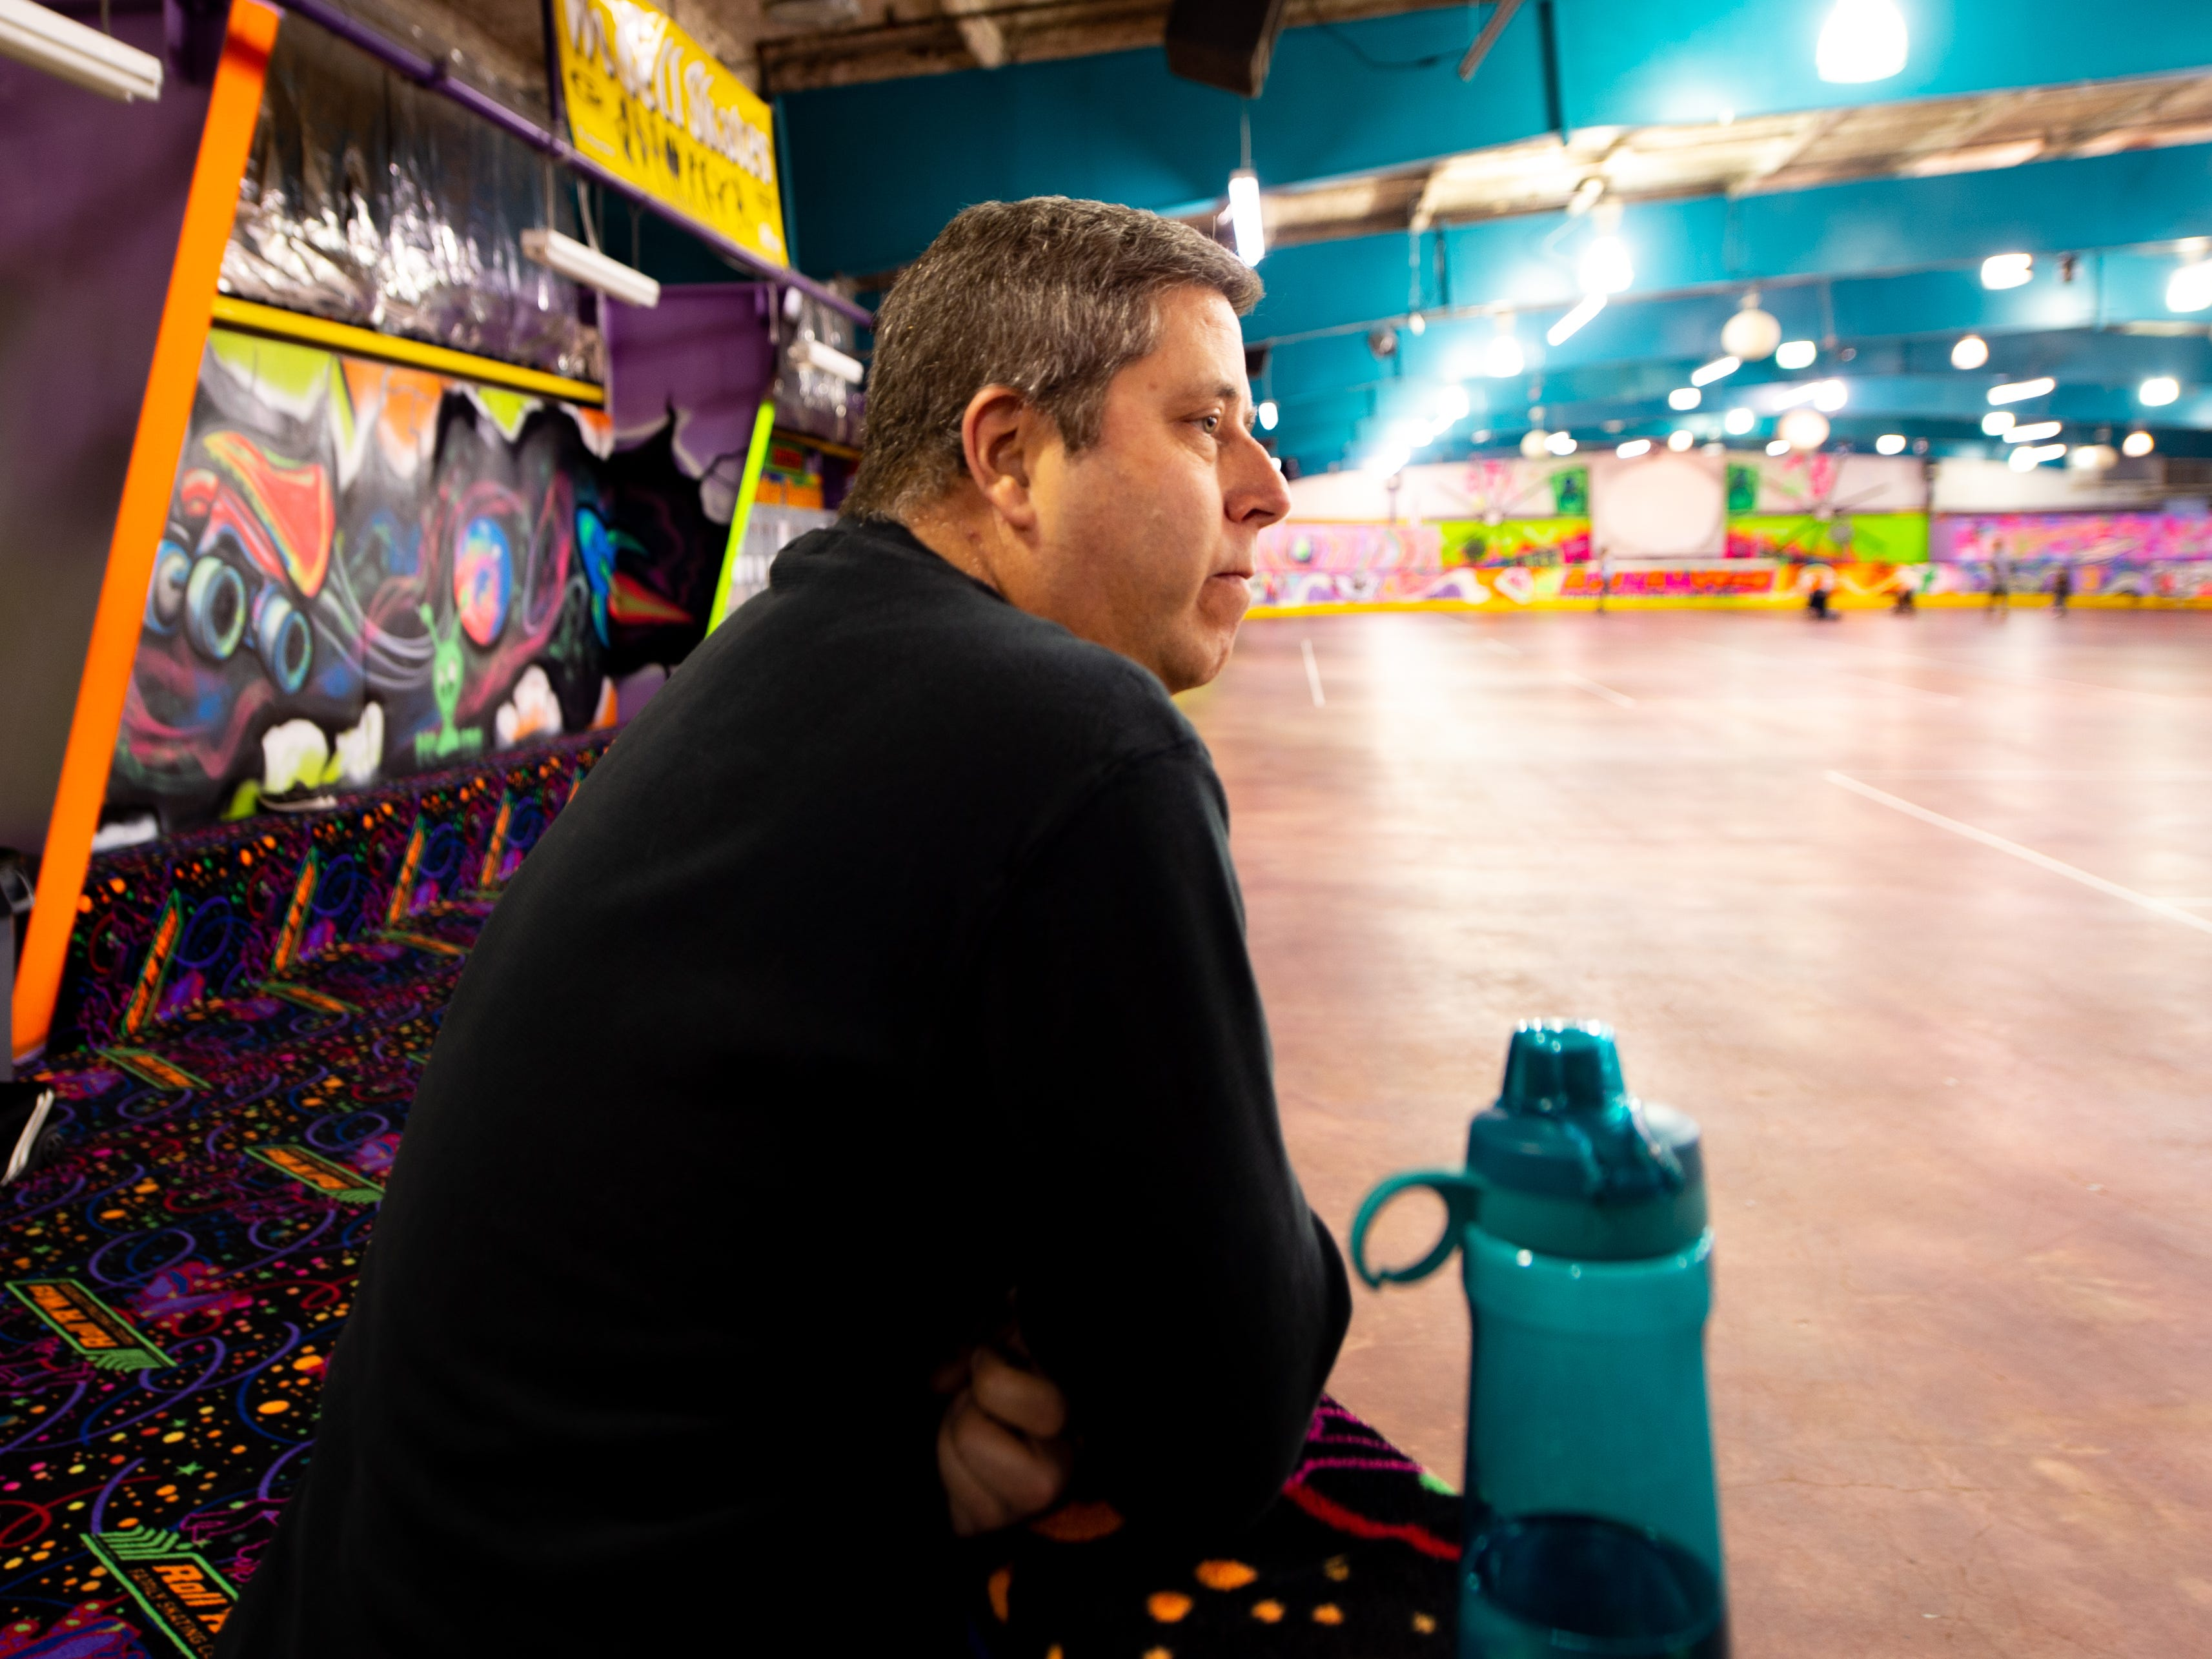 Jim Garrett watches his son, a York City Derby Dames Jr. member, practice at Roll 'R' Way, November 5, 2018.